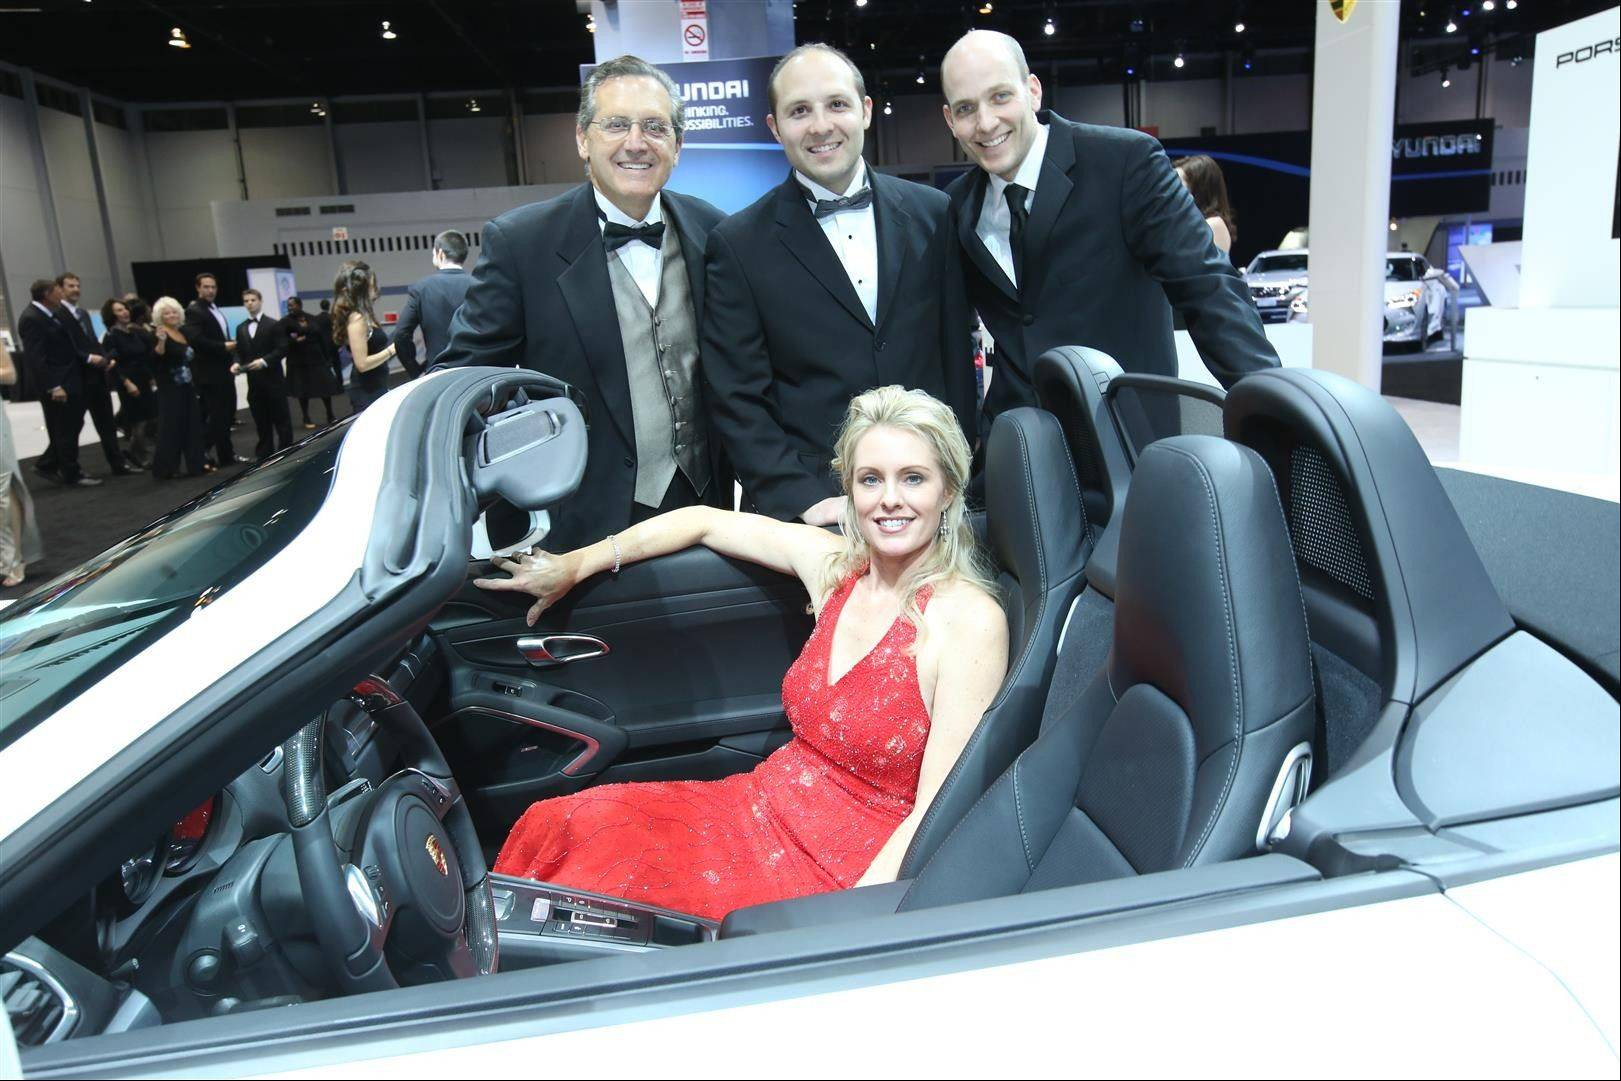 The tuxedo-mandatory affair enables participants to behold the nation's largest auto show in grandeur the evening before it opens to the public.